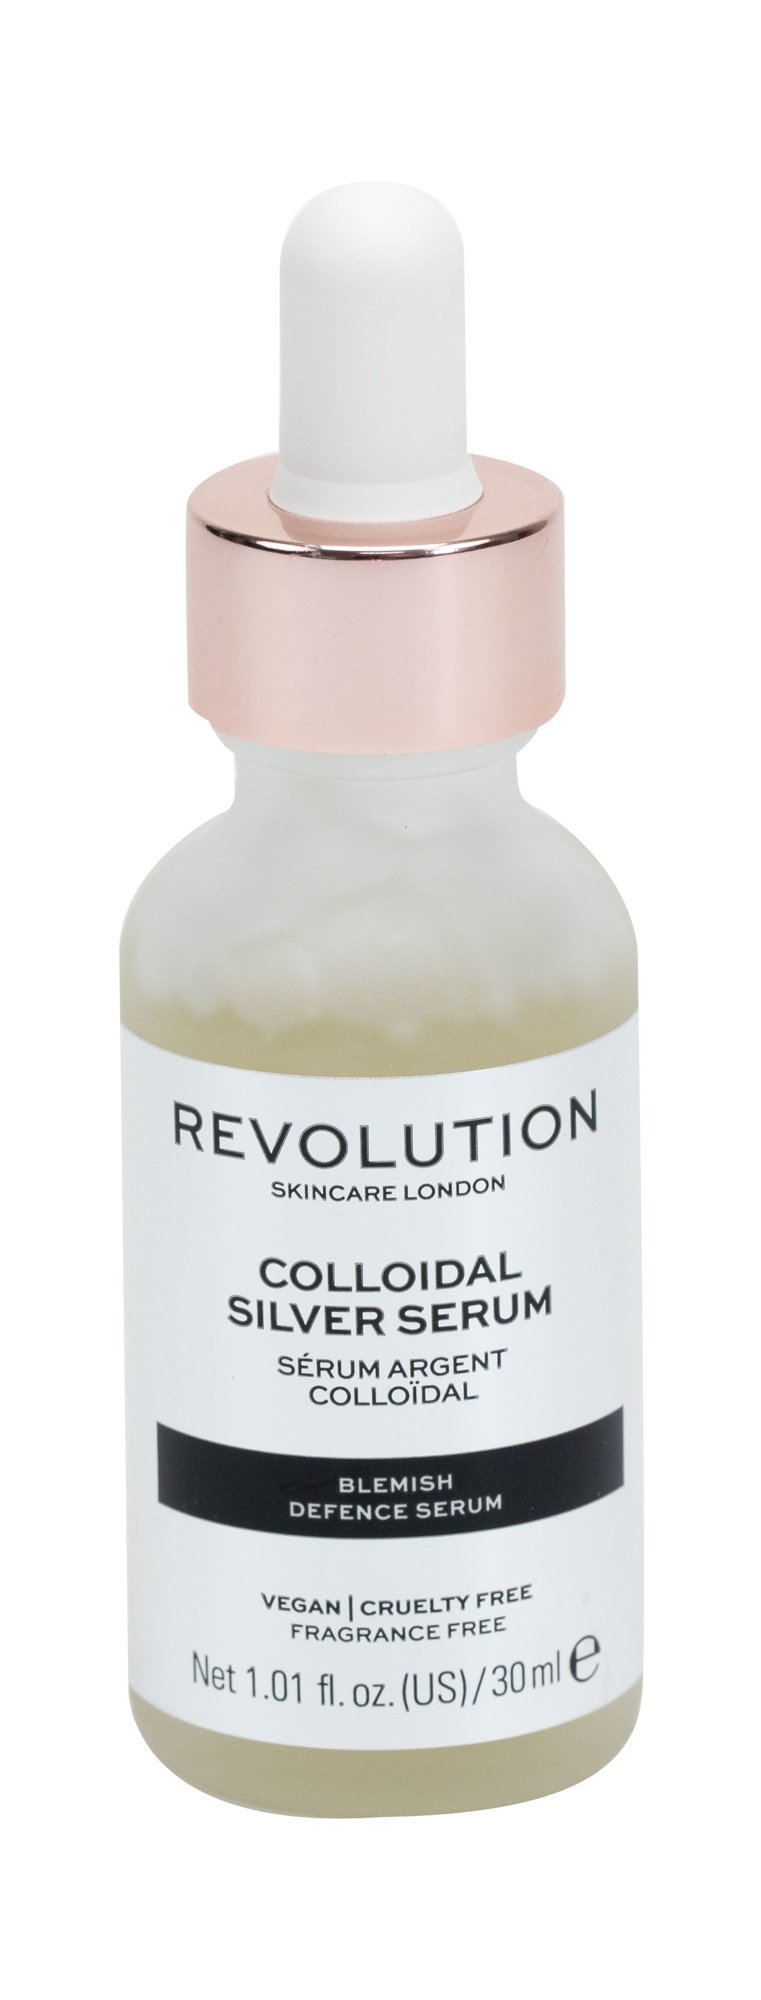 Makeup Revolution London Skincare  Pleťové sérum, W, 30 ml